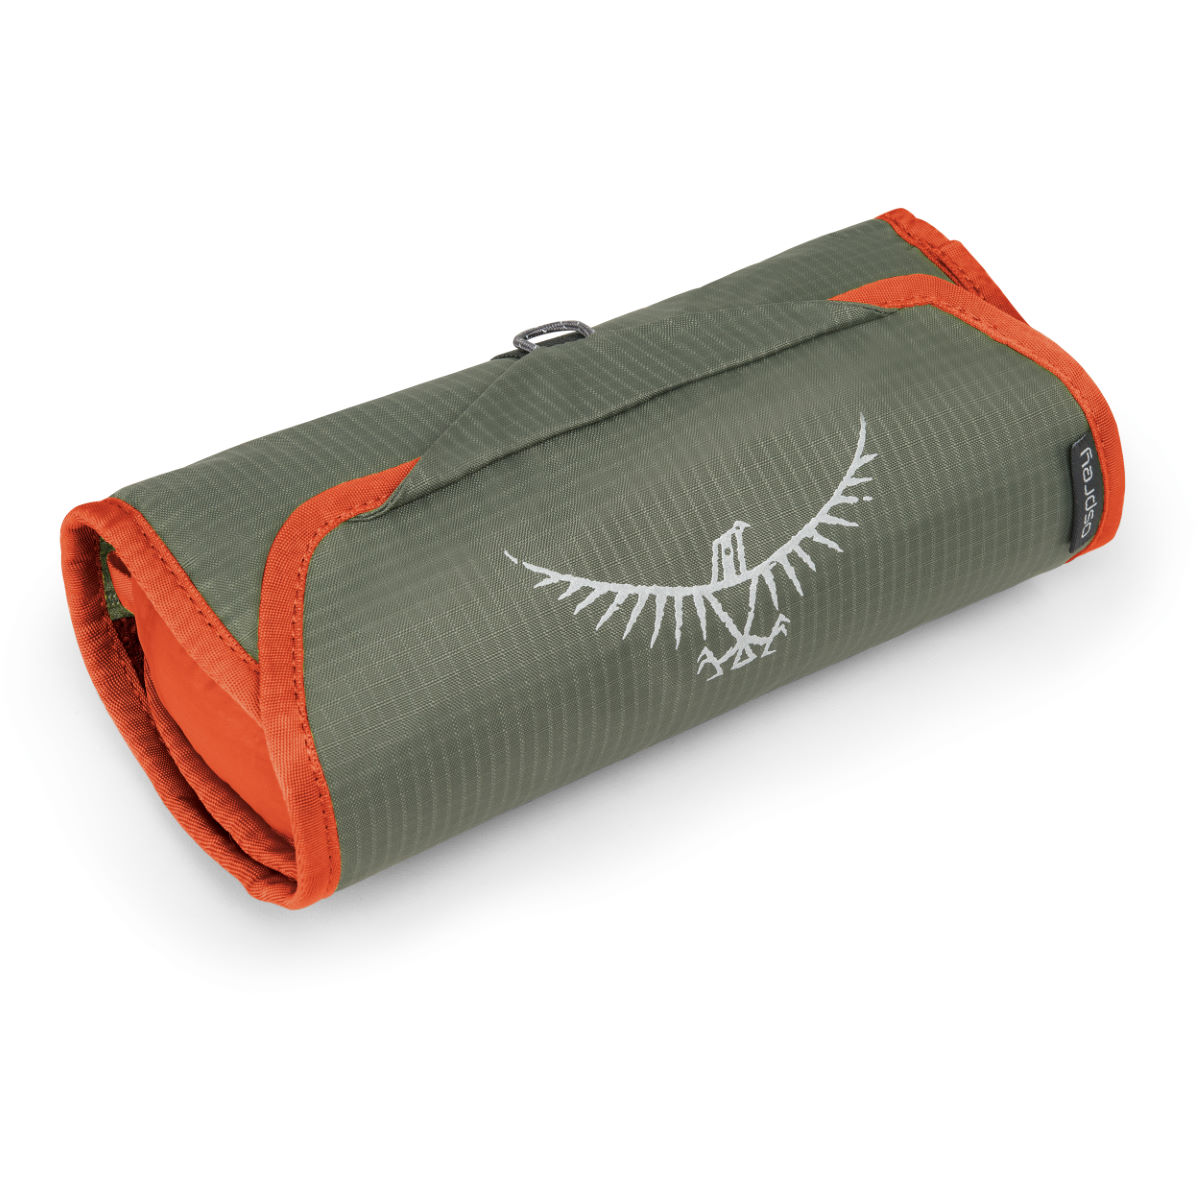 Image of Osprey Wash Roll Travel Bag Wash Bags